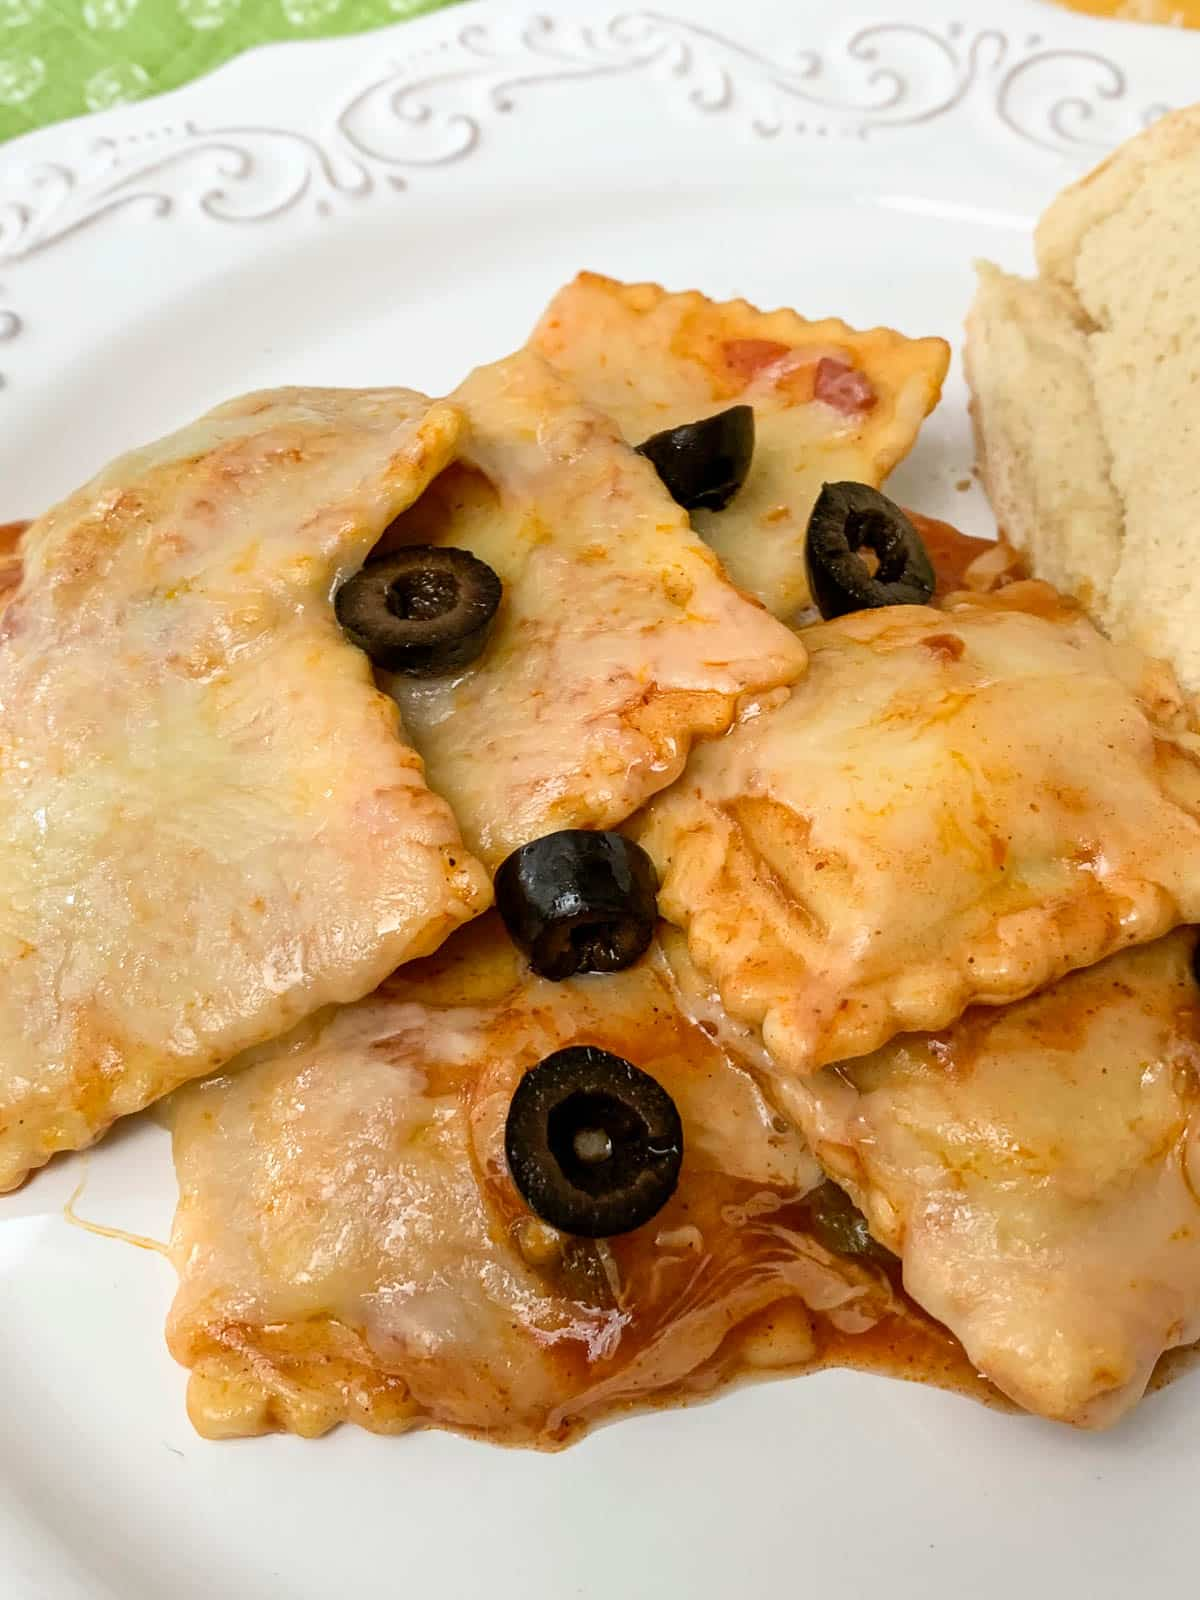 ravioli with black olives and cheese